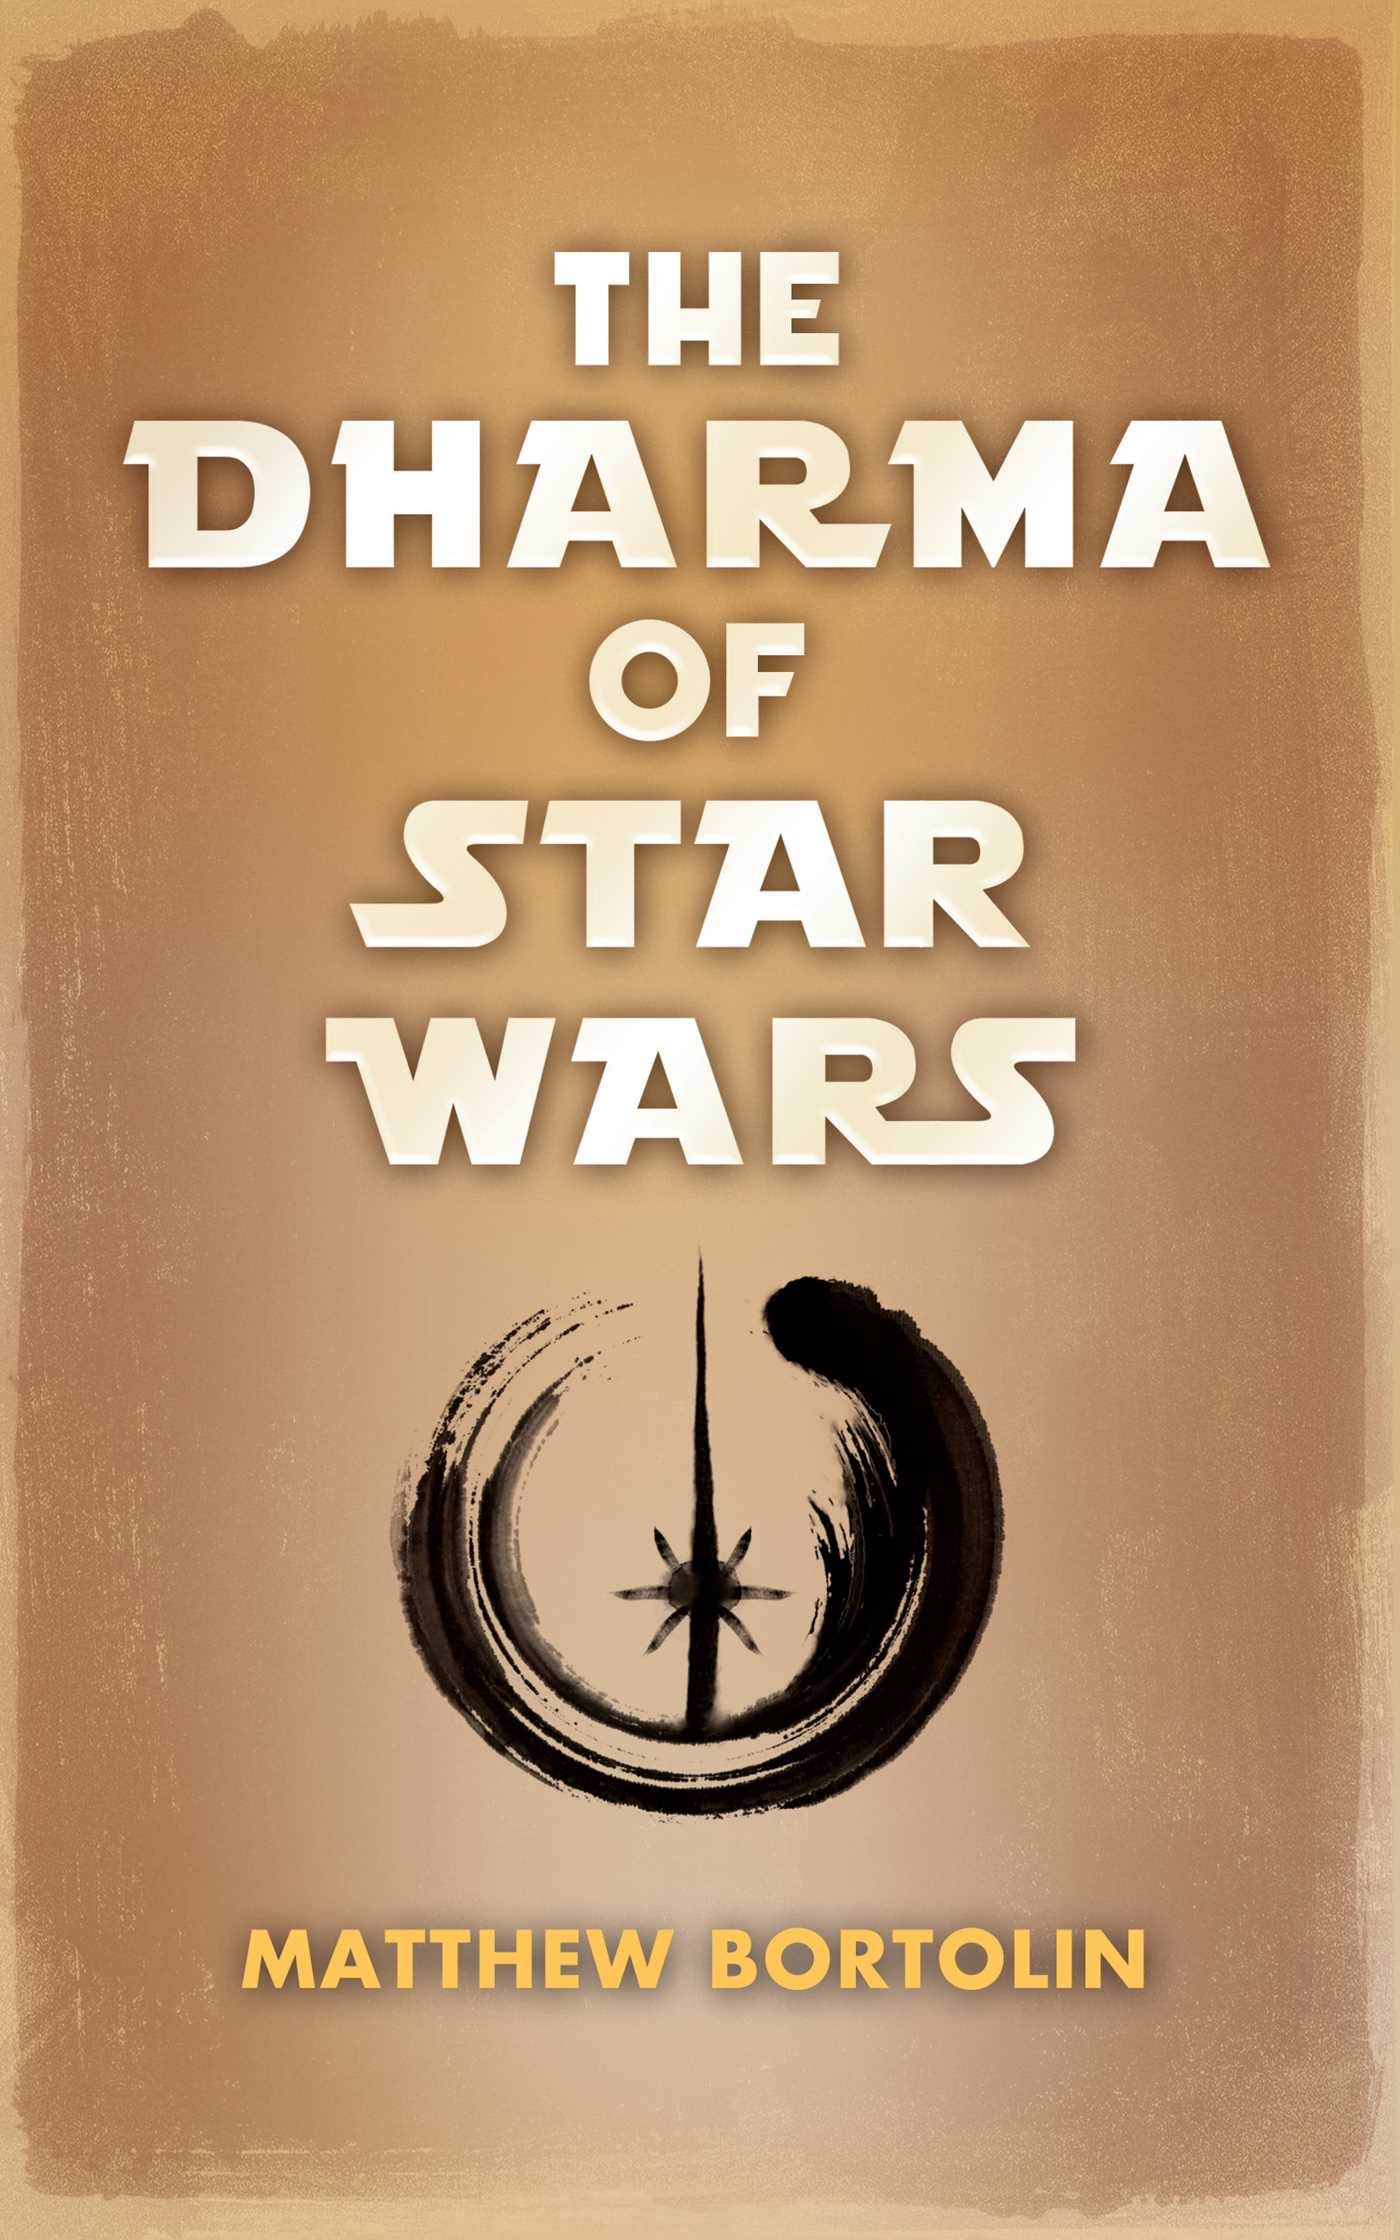 The-dharma-of-star-wars-9780861718283_hr